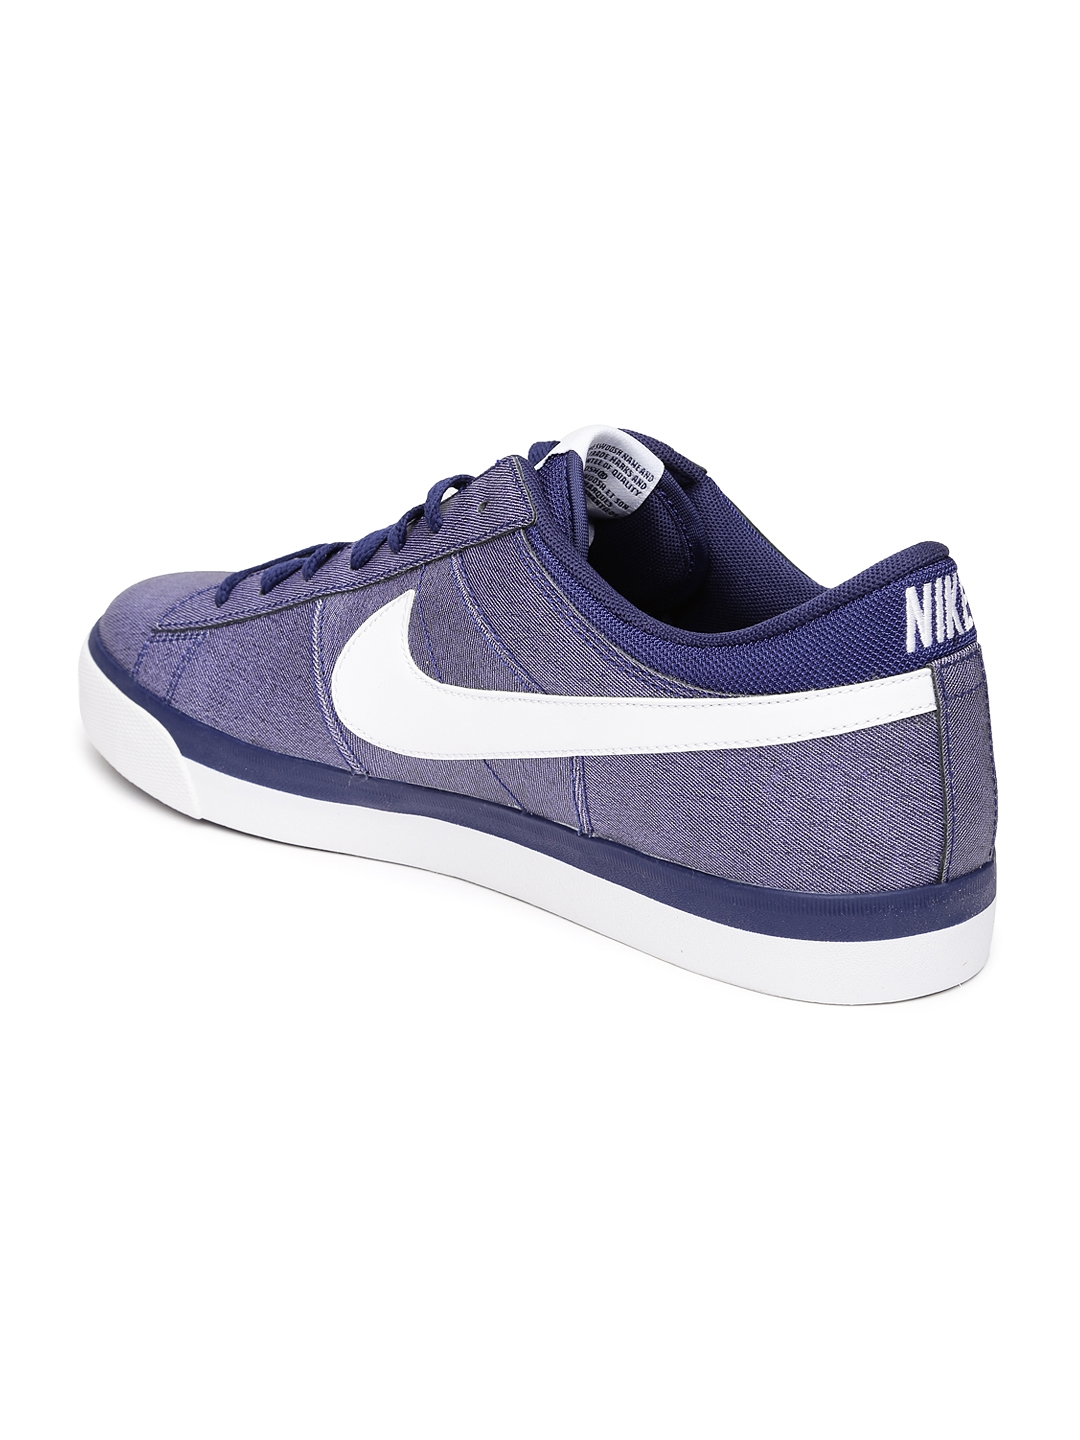 5582b49f77d5 Buy Nike Men Blue Leather Match Supreme Casual Shoes - Casual Shoes ...